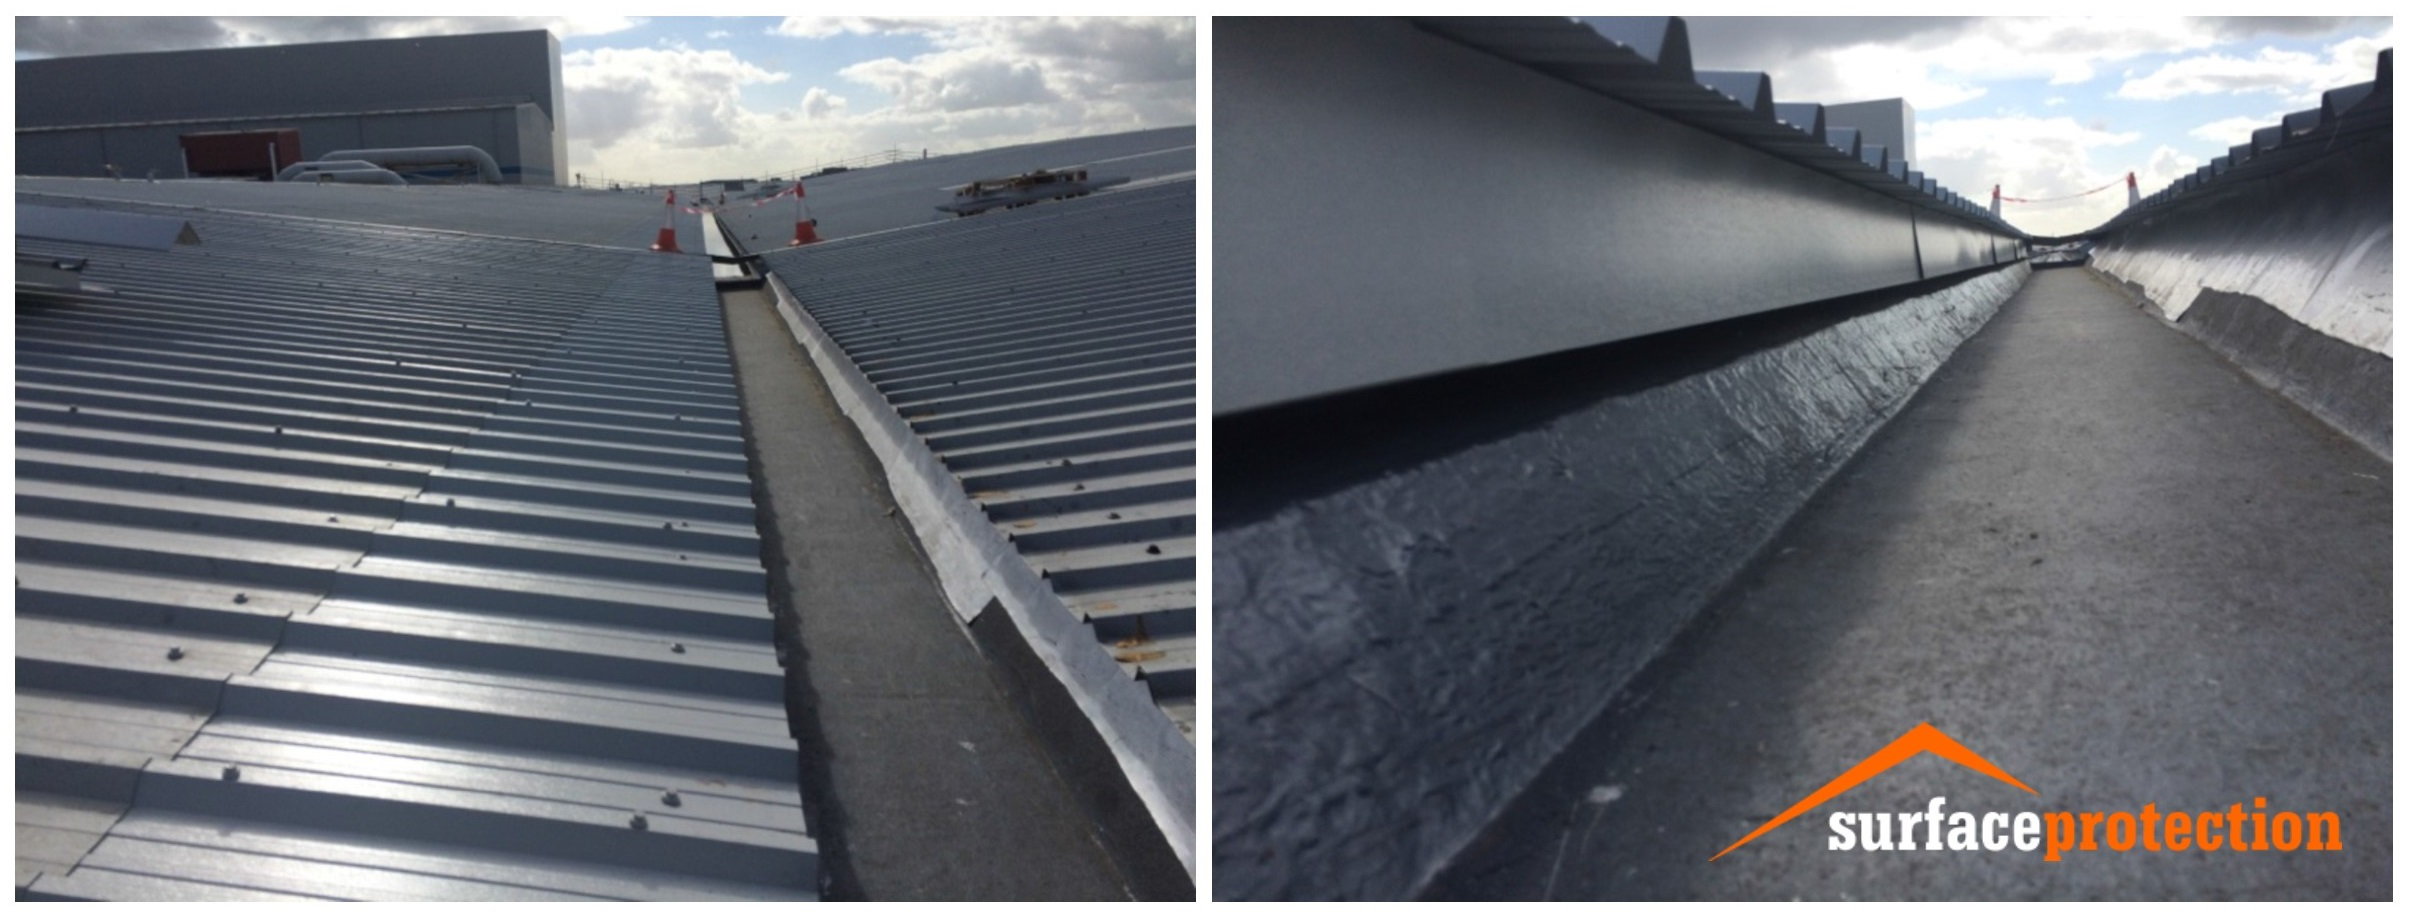 Gutter Coating Surface Protection